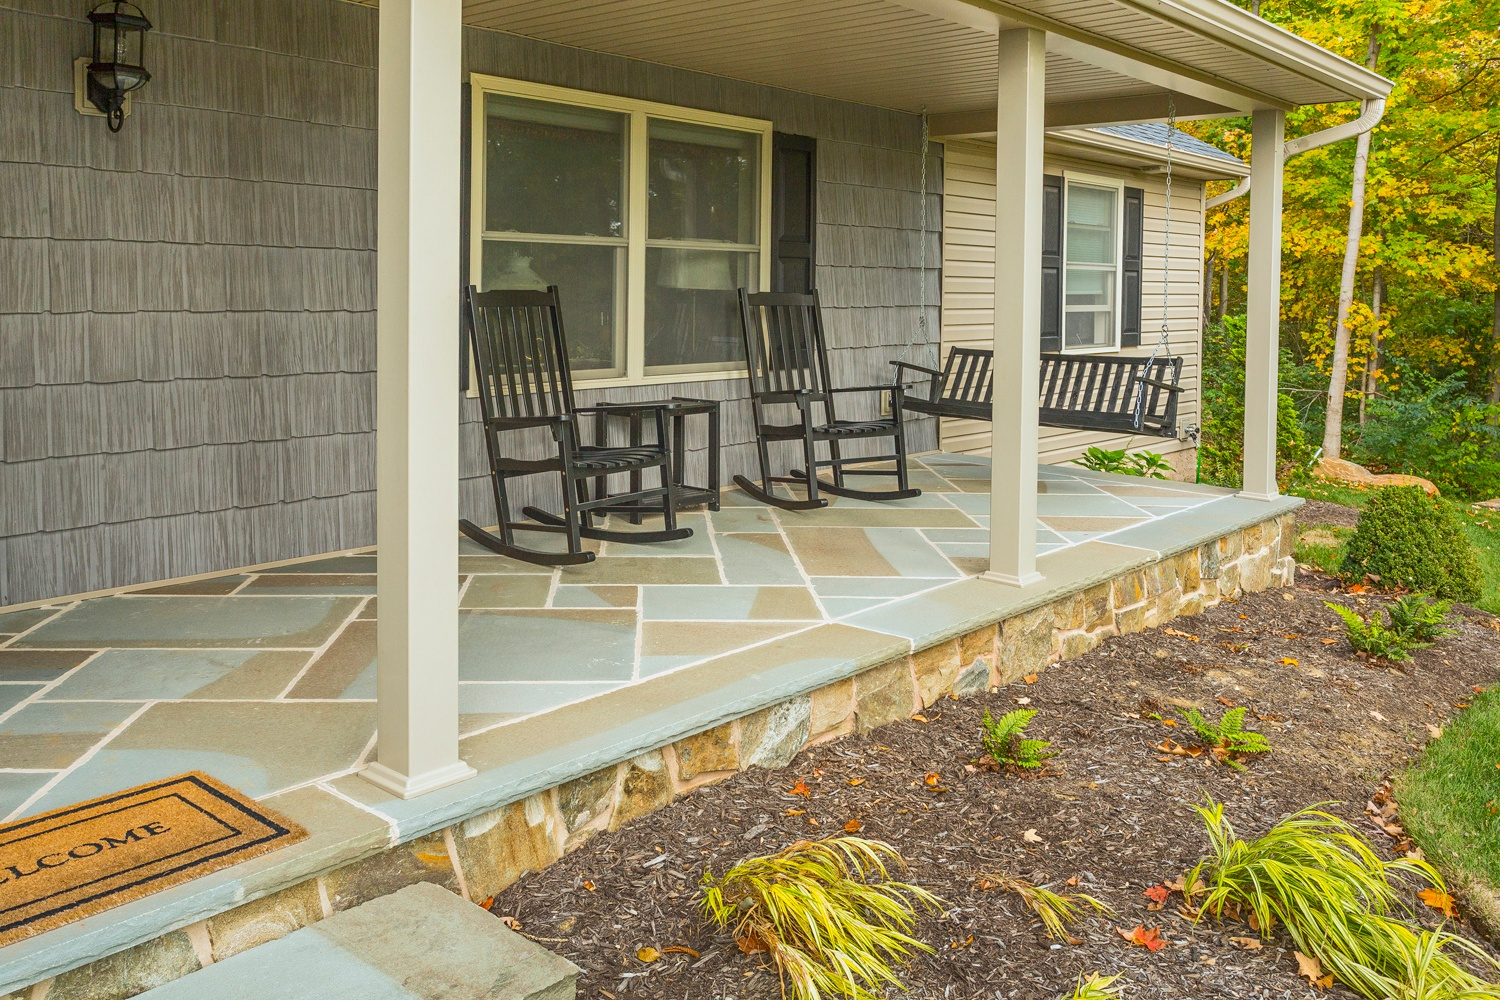 Flagstone porch with rocking chairs